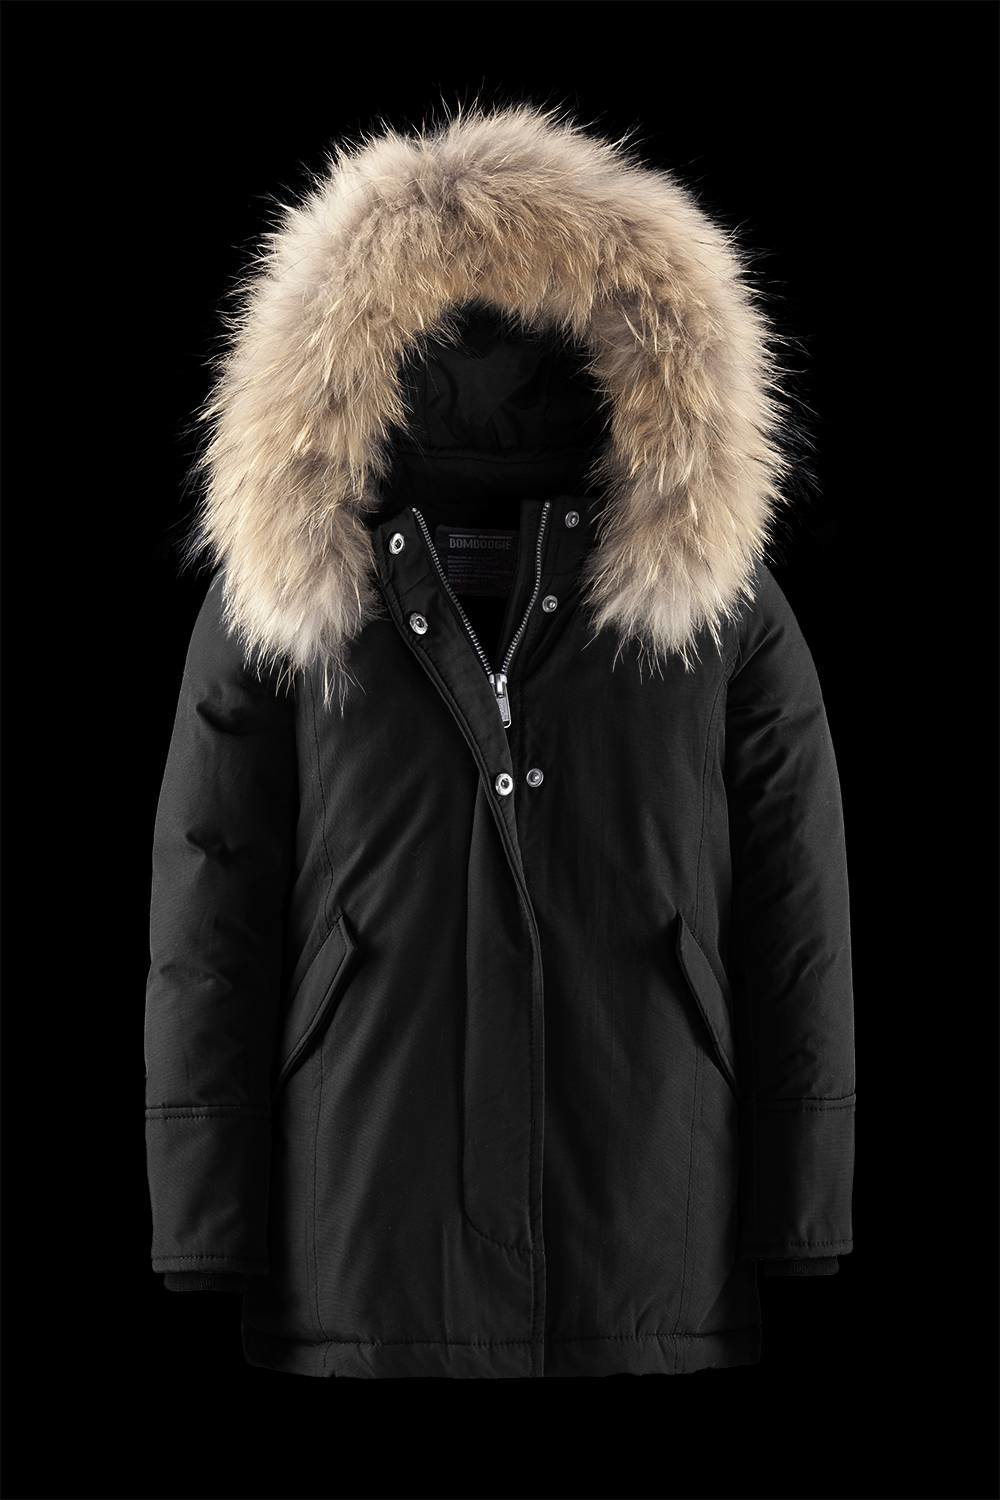 Synthetic down jacket with fur hood